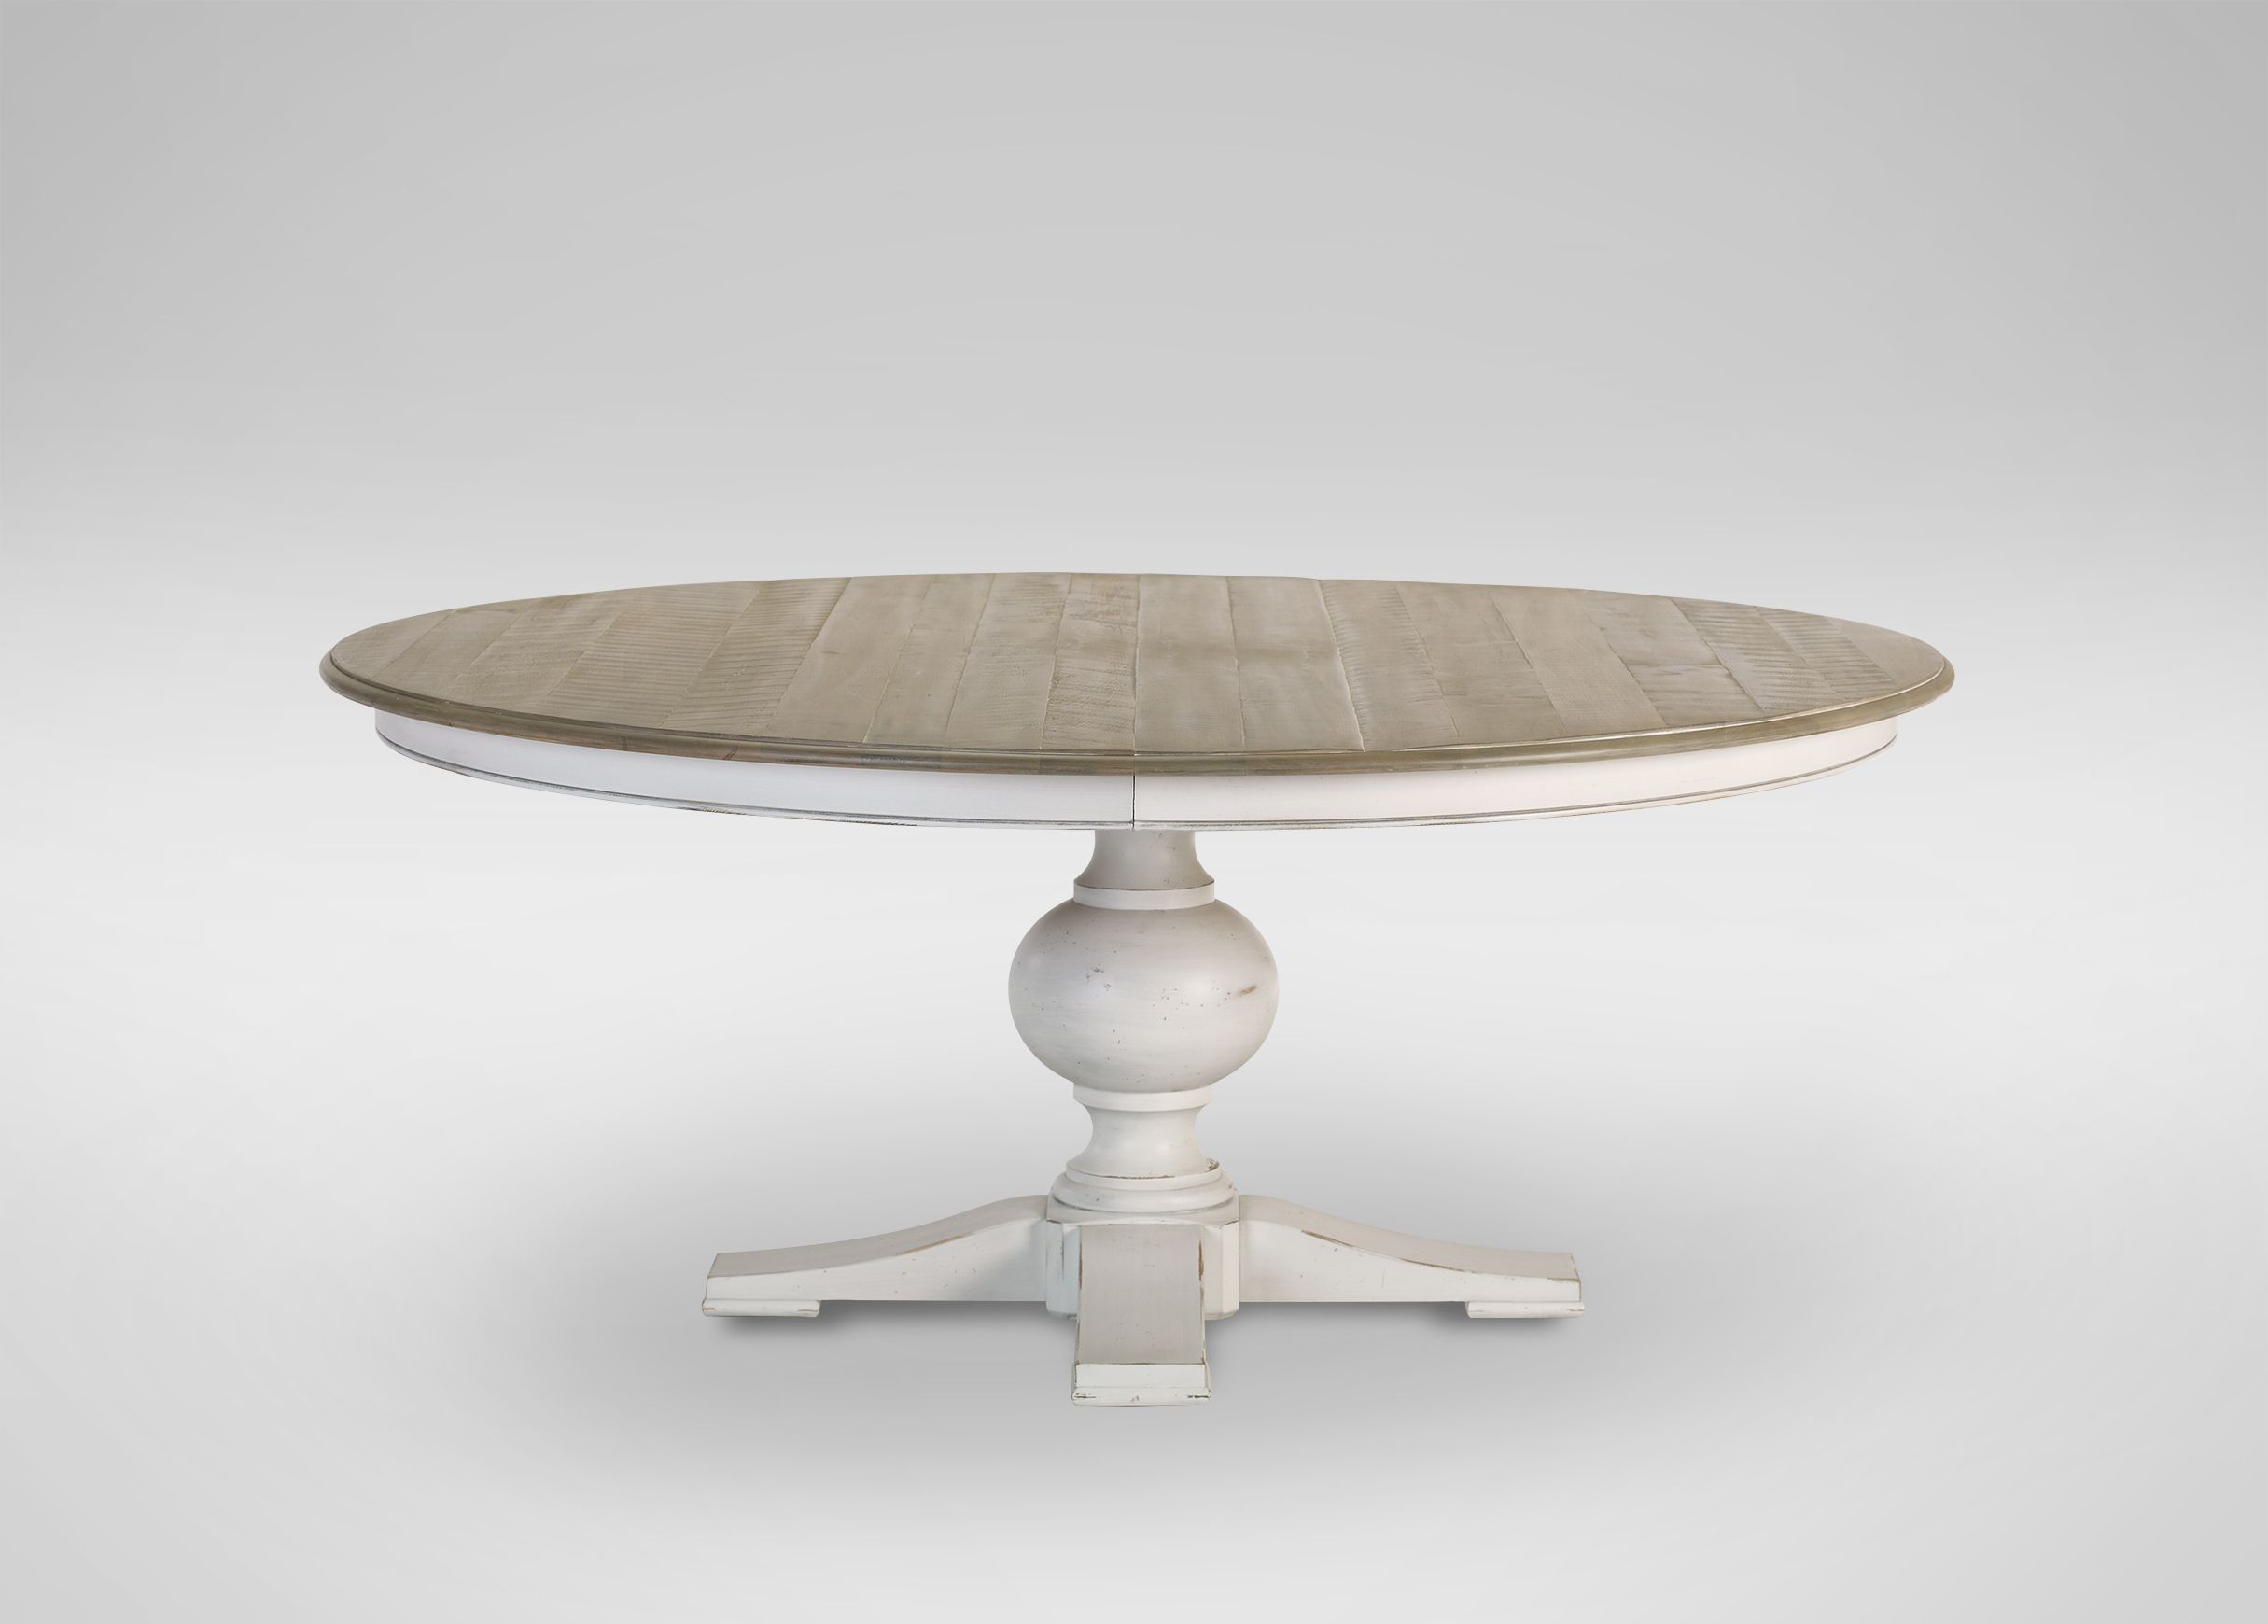 Sanders Round Dining Table Round Dining Table Dining Table